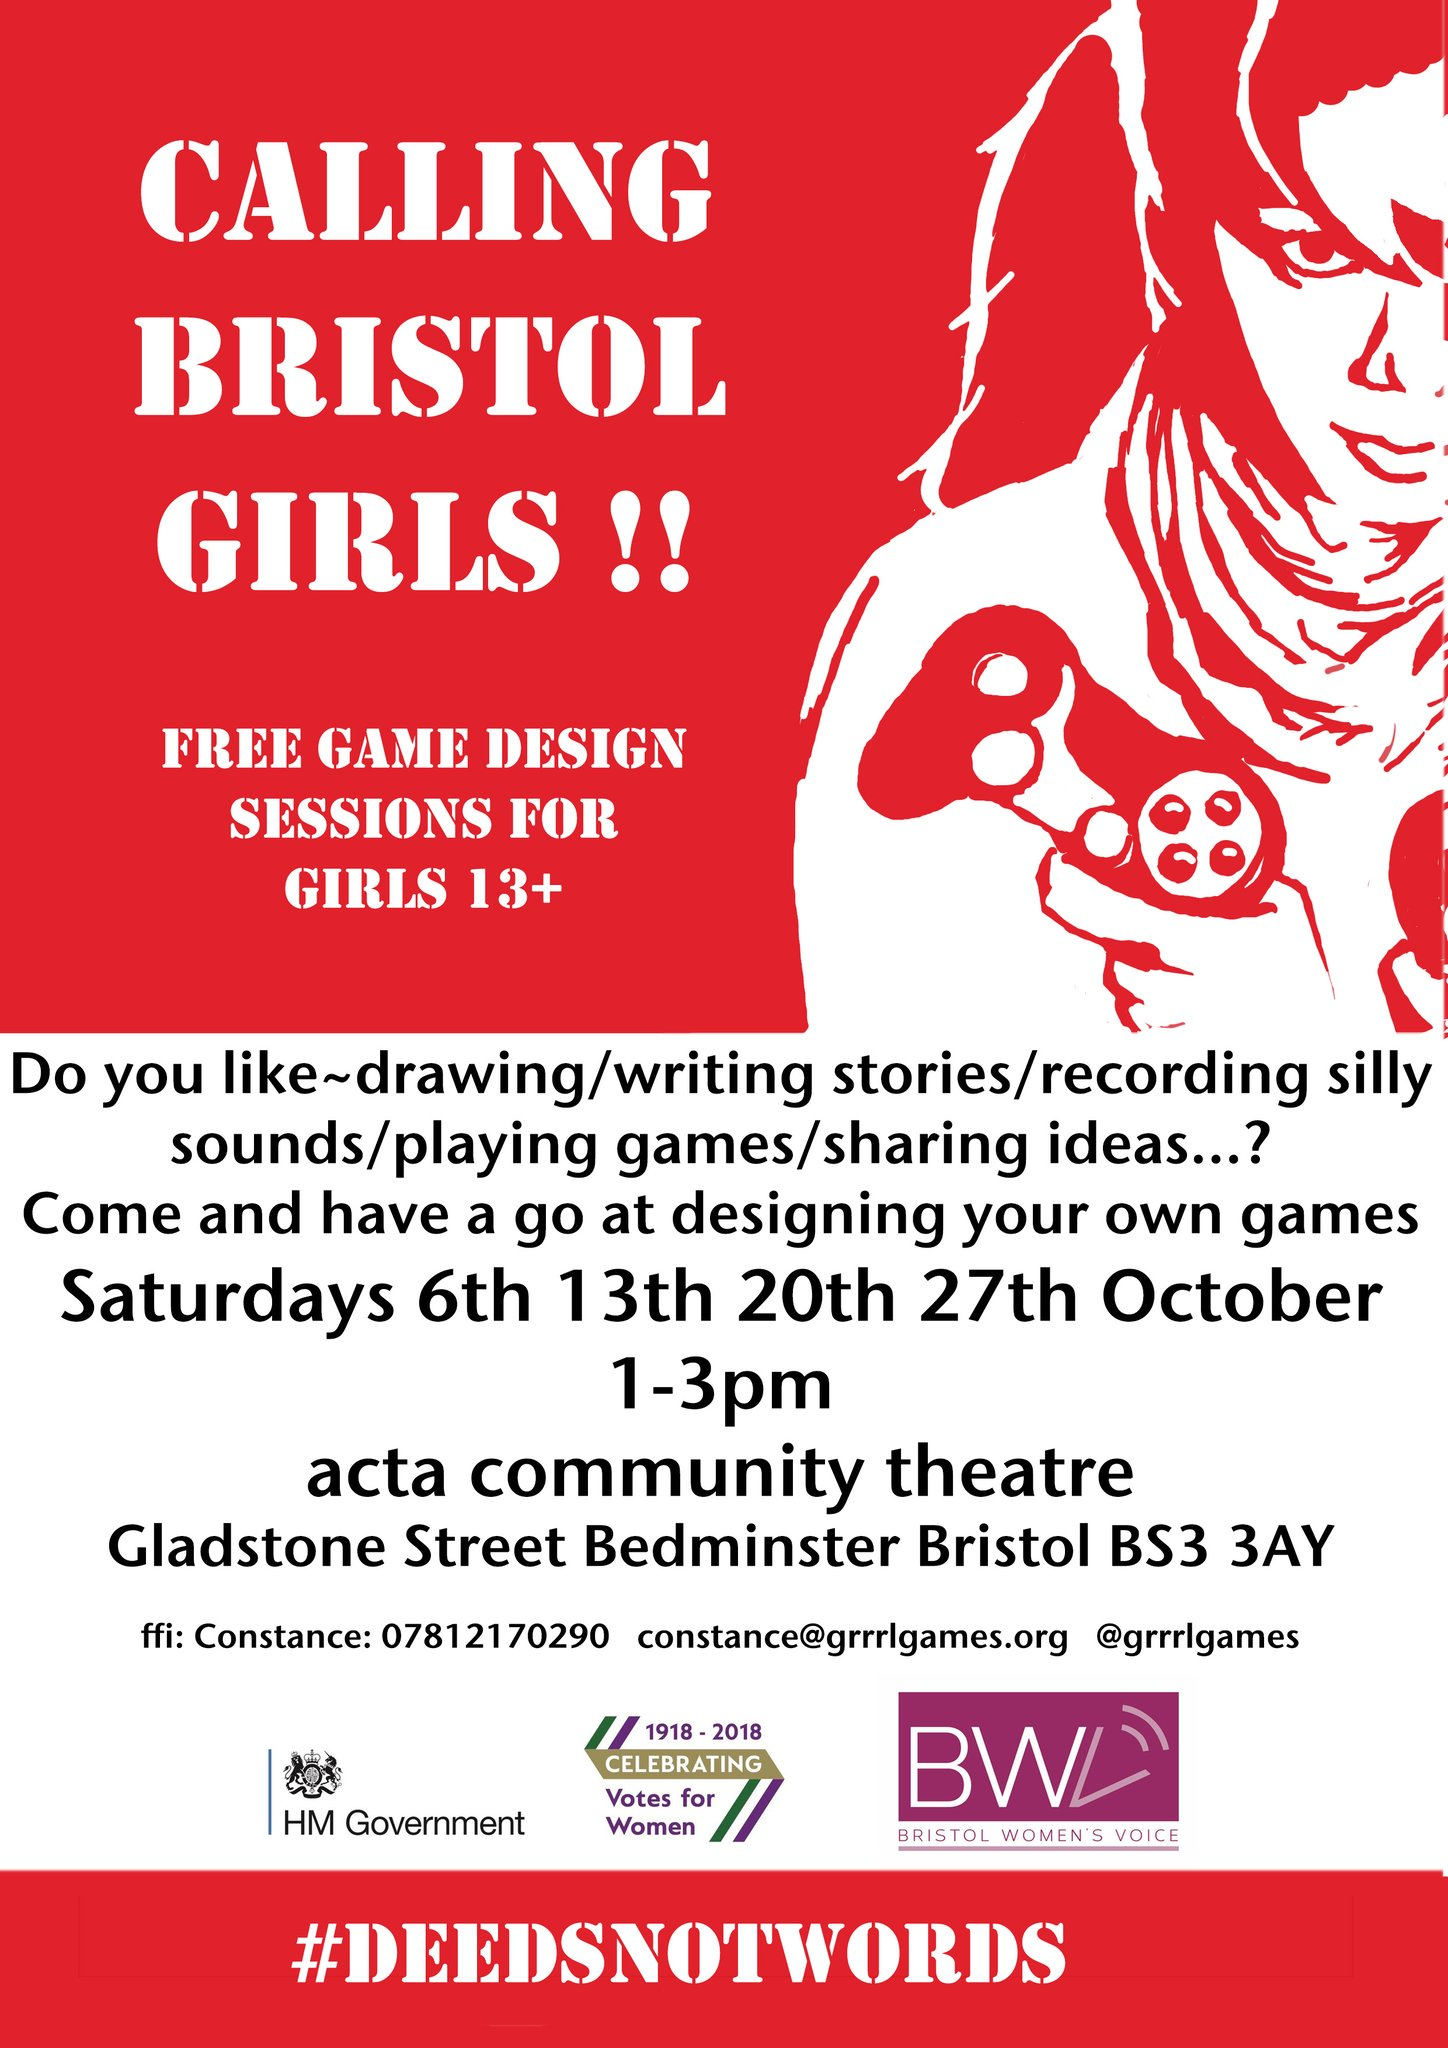 A poster with an illustration of a determined looking girl holding a video game controller. The poster reads 'Calling Bristol Girls'! Free game design session for girls 13+ Do you like drawing/writing stories/recording silly sounds/playing games/sharing ideas...? Come and have a go at designing your own games. Saturdays 6th, 13th, 20th, 27th October 1 - 3pm, acta community theare, Gladstone Street, Bedminster. Bristol, Bs3 3AY